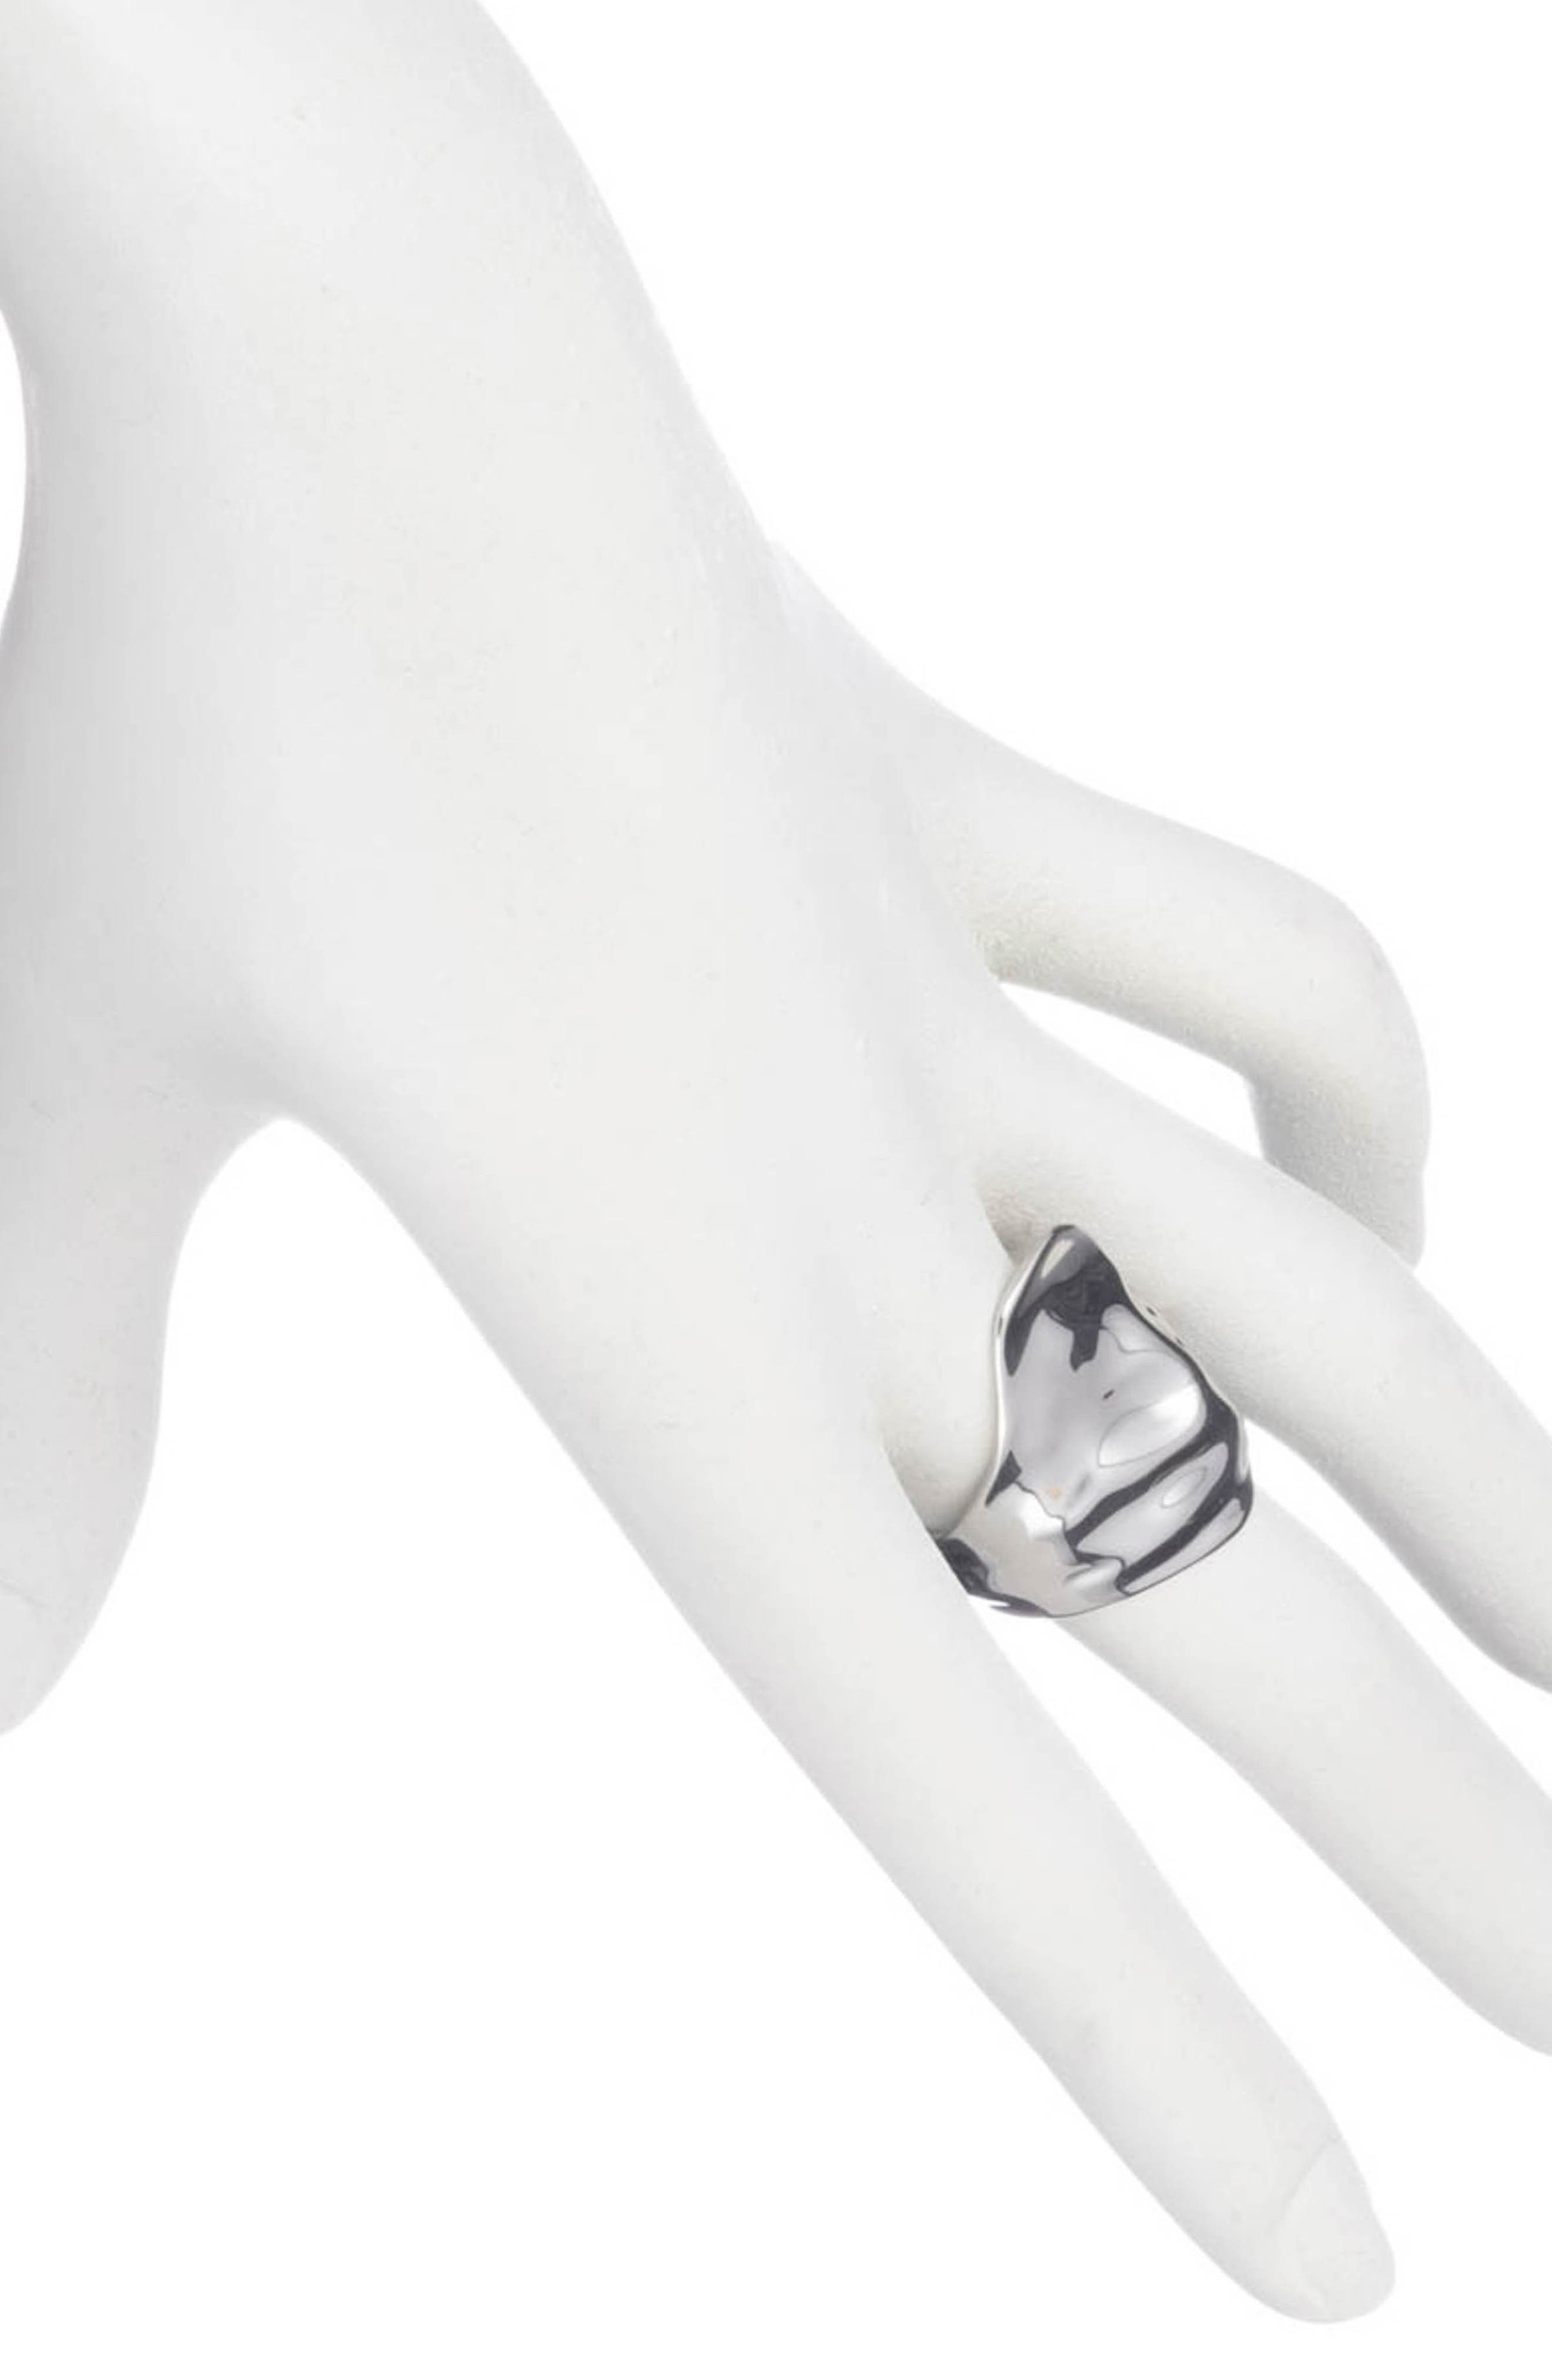 ALEXIS BITTAR,                             Crumpled Asymmetric Statement Ring,                             Alternate thumbnail 2, color,                             SILVER